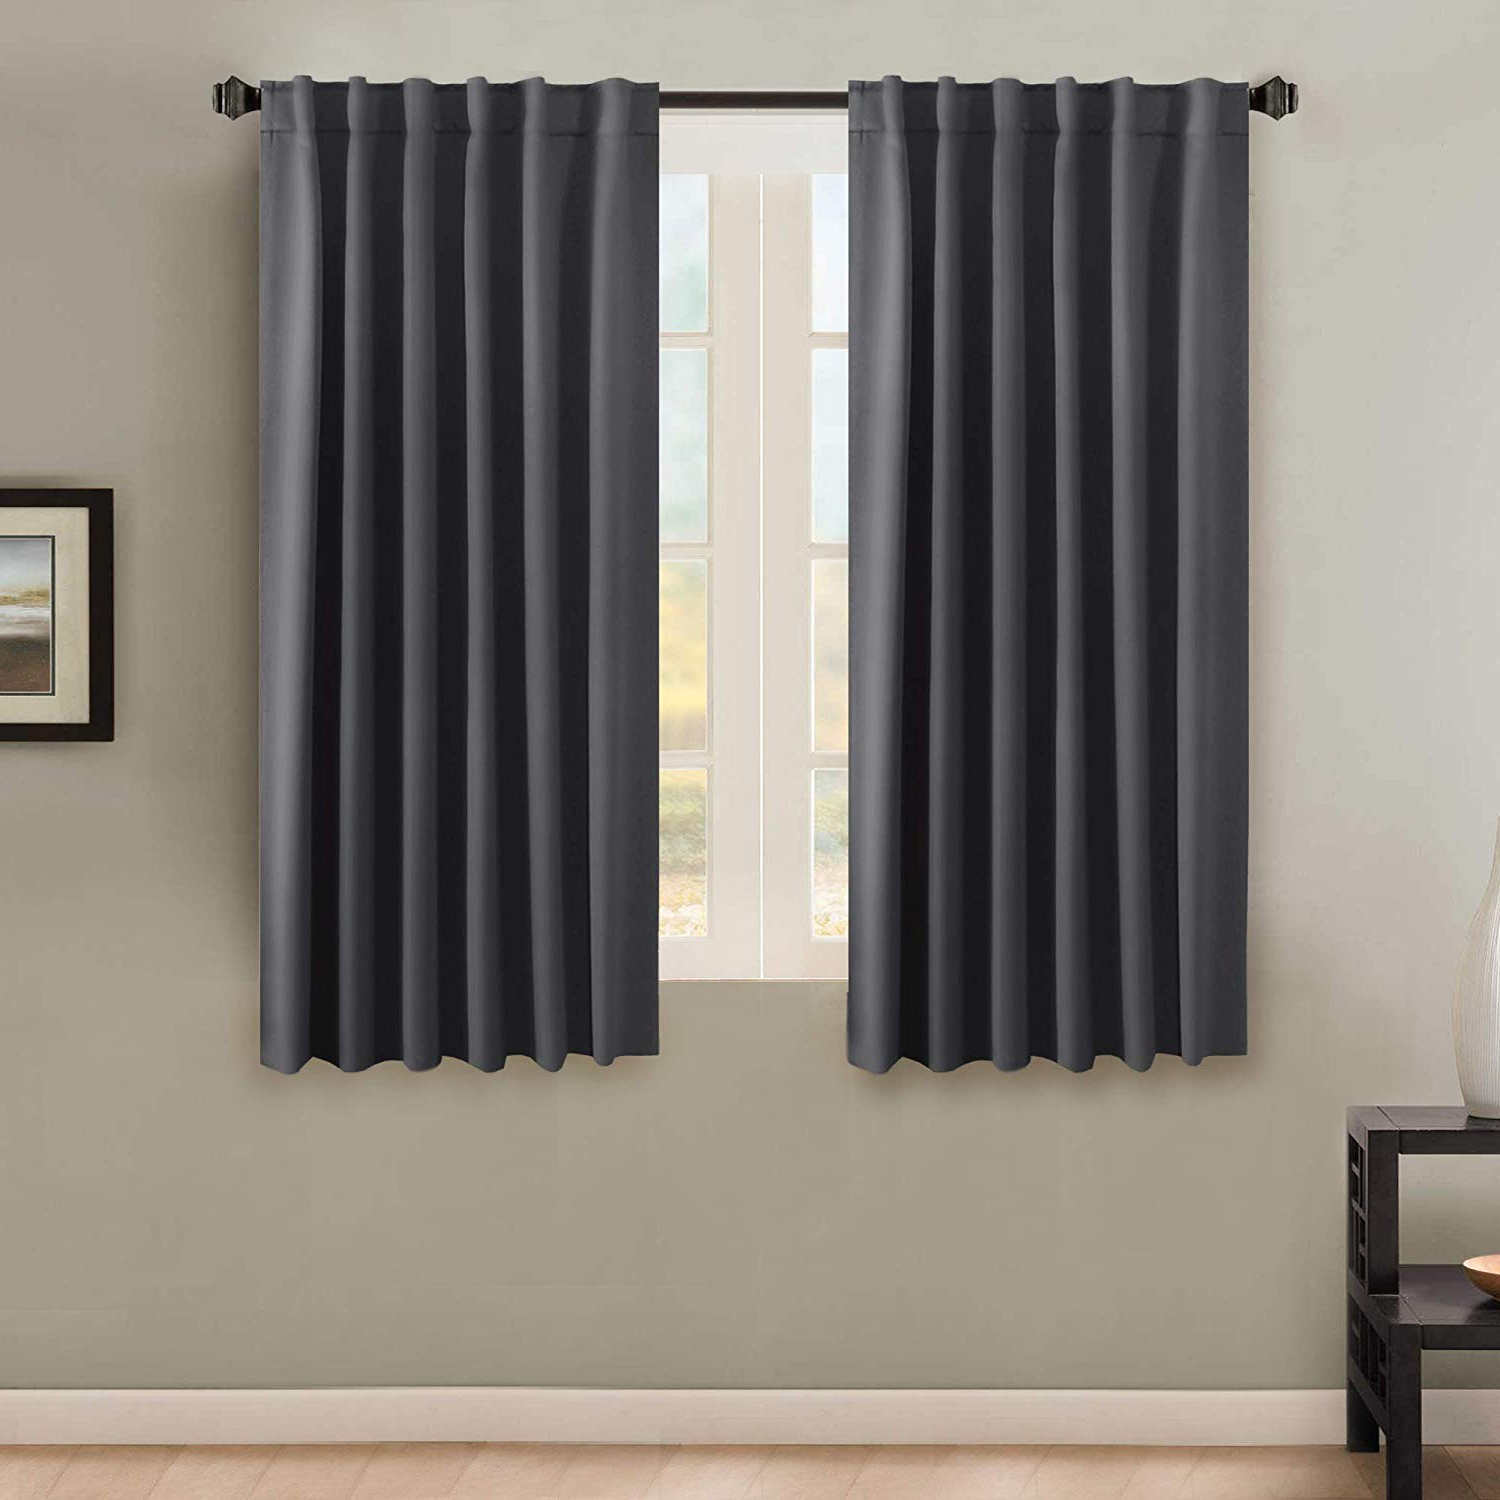 Popular Thermal Rod Pocket Blackout Curtain Panel Pairs For H (View 9 of 20)